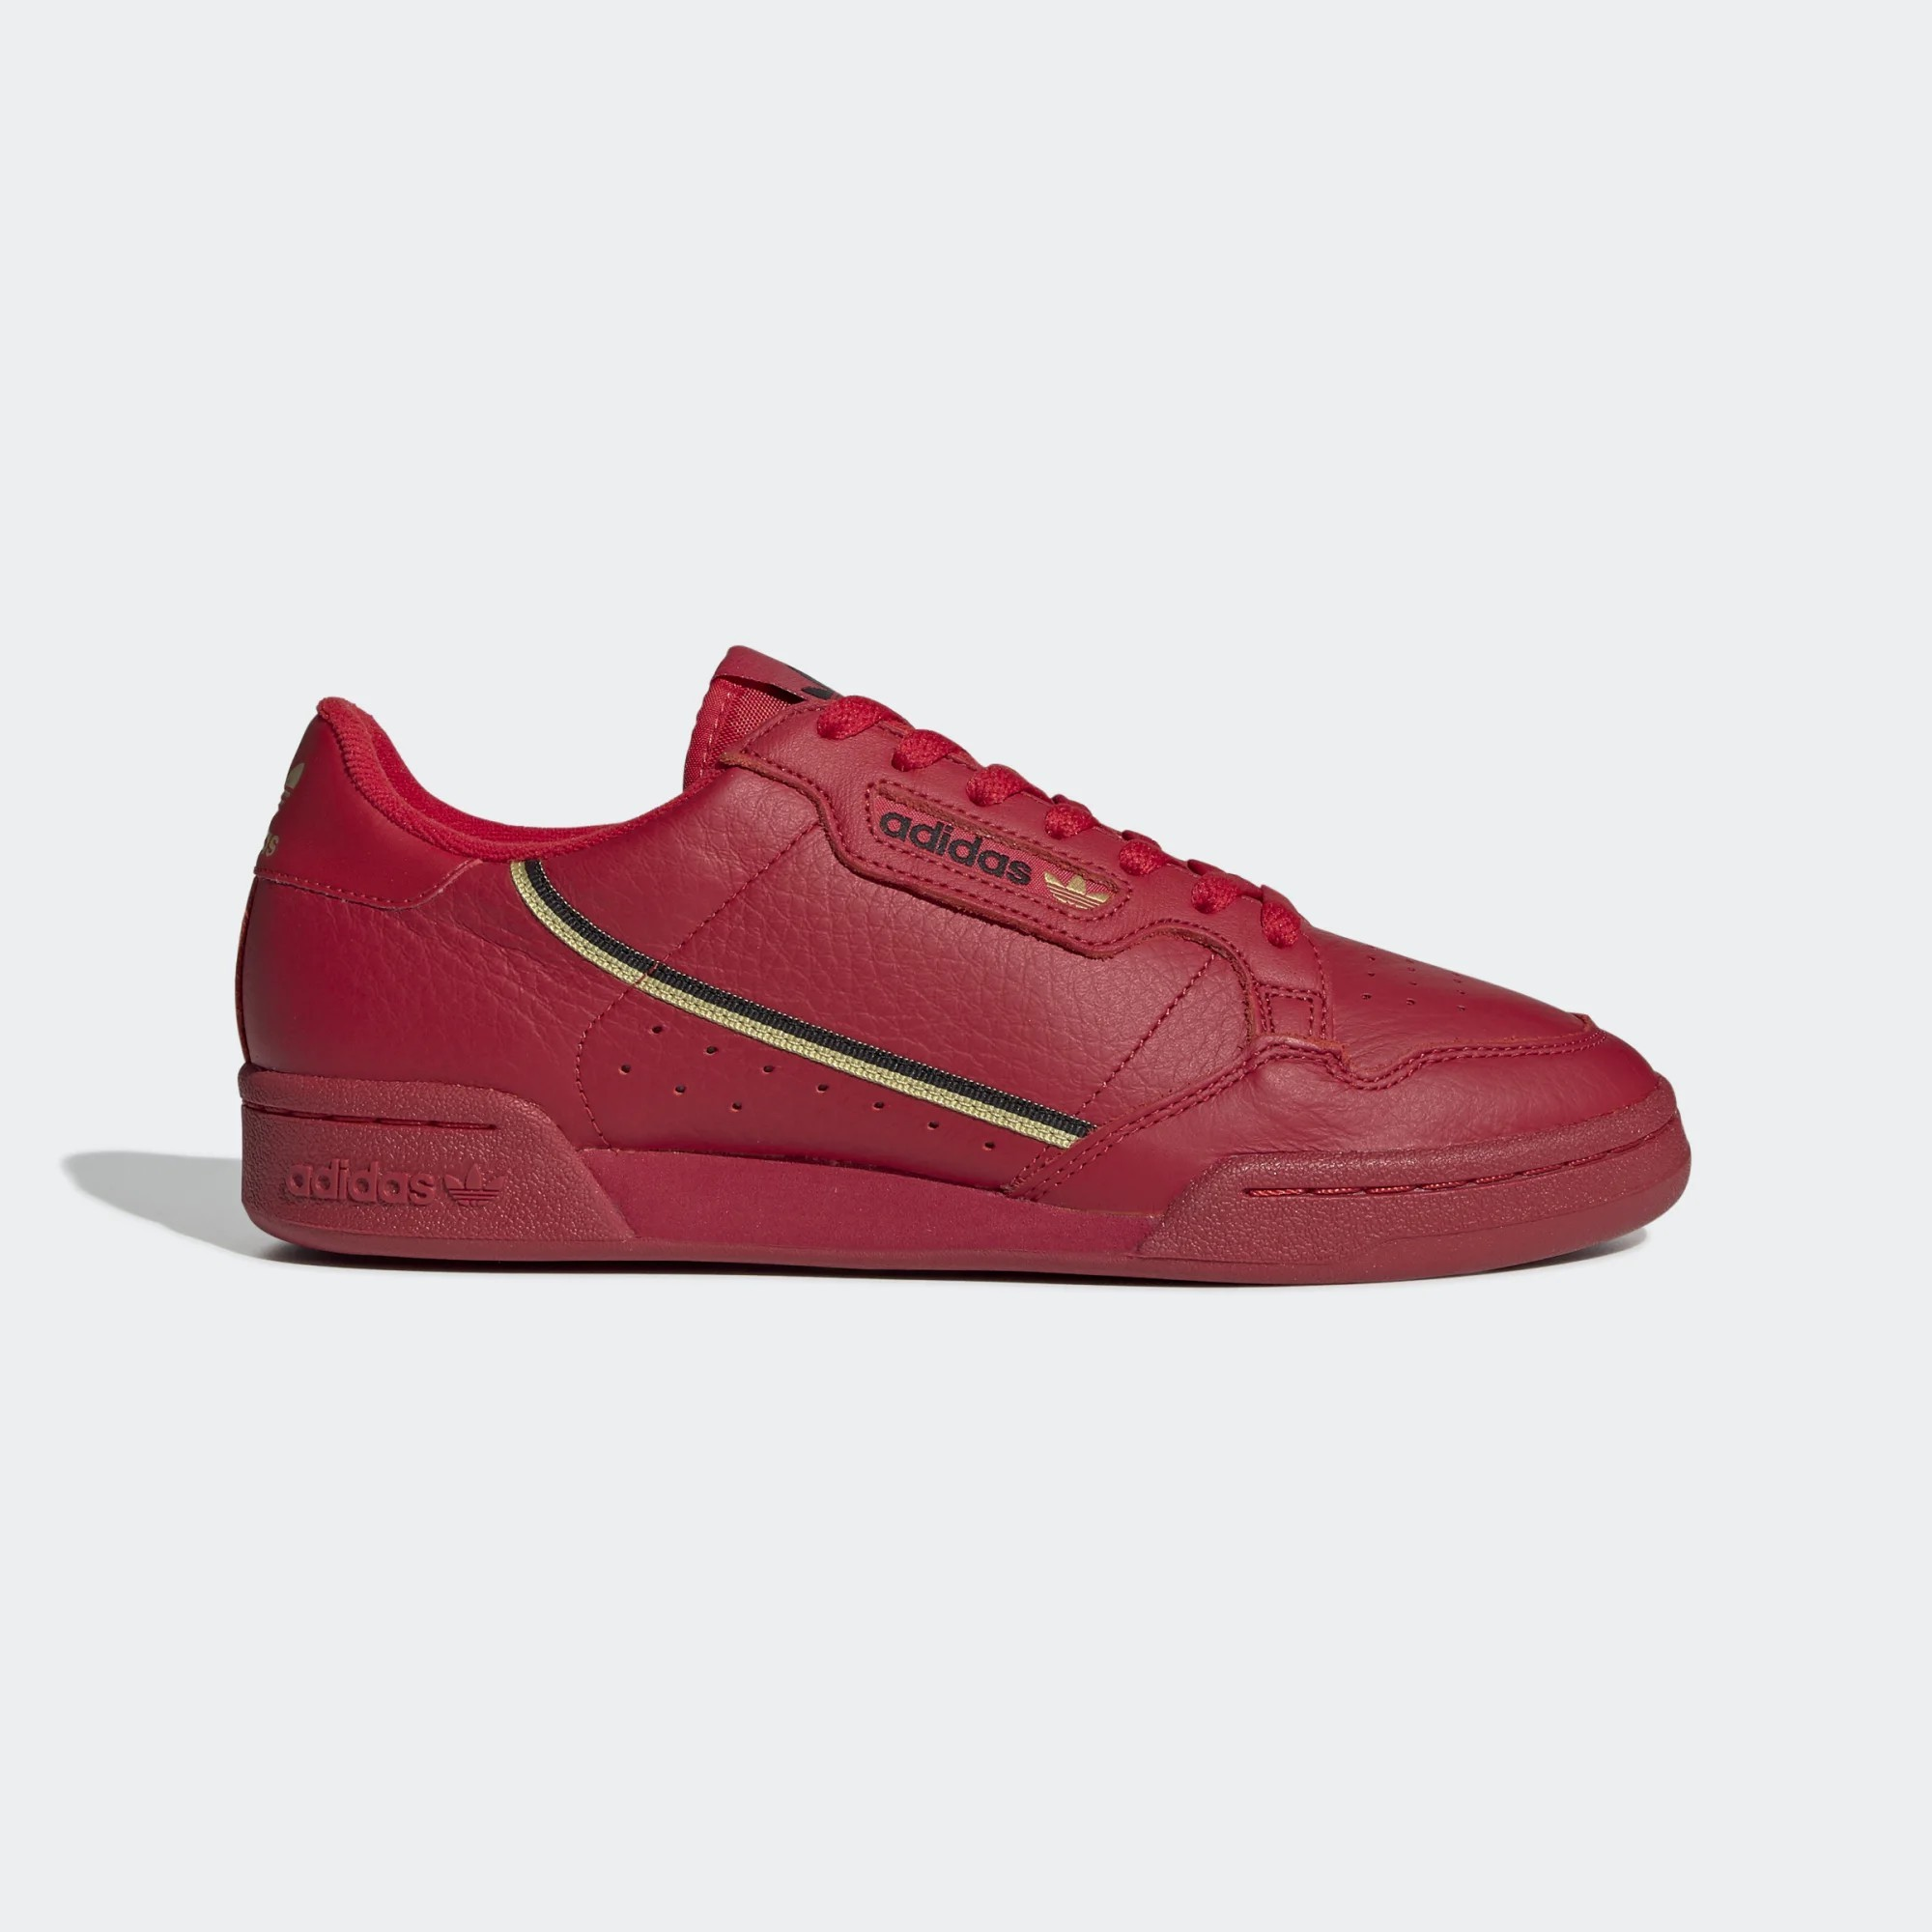 Adidas Continental 80 Scarlet Red/Gold Metallic-Core Black EE4144